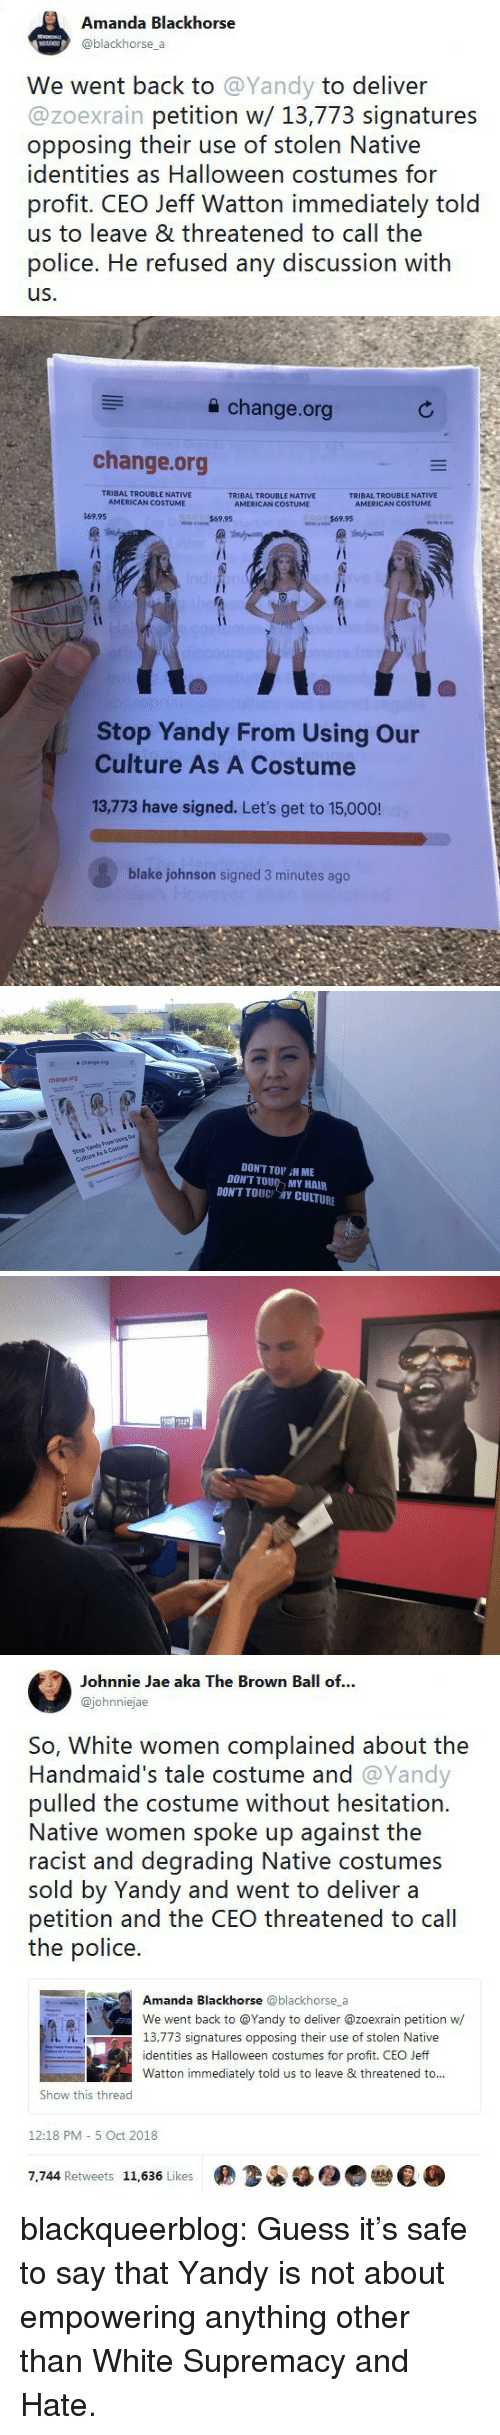 degrading: Amanda Blackhorse  @blackhorse a  We went back to @Yandy to deliver  @zoexrain petition w/ 13,773 signatures  opposing their use of stolen Native  identities as Halloween costumes for  profit. CEO Jeff Watton immediately told  us to leave & threatened to call the  police. He refused any discussion with  us.   a change.org  change.org  TRIBAL TROUBLE NATIVE  AMERICAN COSTUME  TRIBAL TROUBLE NATIVE  AMERICAN COSTUME  TRIBAL TROUBLE NATIVE  69.95  $69.95  Stop Yandy From Using Our  Culture As A Costume  13,773 have signed. Let's get to 15,000!  blake johnson signed 3 minutes ago   슐 change.org  change.org  Stop Yandy From Using Our  Culture As A Costume  13773 have signed. Lets get to 150  DON'T TOU H ME  DON'T TOU MY HAIR  DONT TOUC 개Y CULTURE   Johnnie Jae aka The Brown Ball of...  @johnniejae  So, White women complained about the  Handmaid's tale costume and @Yandy  pulled the costume without hesitation.  Native women spoke up against the  racist and degrading Native costumes  sold by Yandy and went to deliver a  petition and the CEO threatened to cal  the police.  Amanda Blackhorse @blackhorse_a  We went back to @Yandy to deliver @zoexrain petition w  13,773 signatures opposing their use of stolen Native  identities as Halloween costumes for profit. CEO Jeff  Watton immediately told us to leave & threatened to..  Show this thread  12:18 PM- 5 Oct 2018  7,744 Retweets 11,636 Likes  佣34锰●● blackqueerblog:  Guess it's safe to say that Yandy is not about empowering anything other than White Supremacy and Hate.